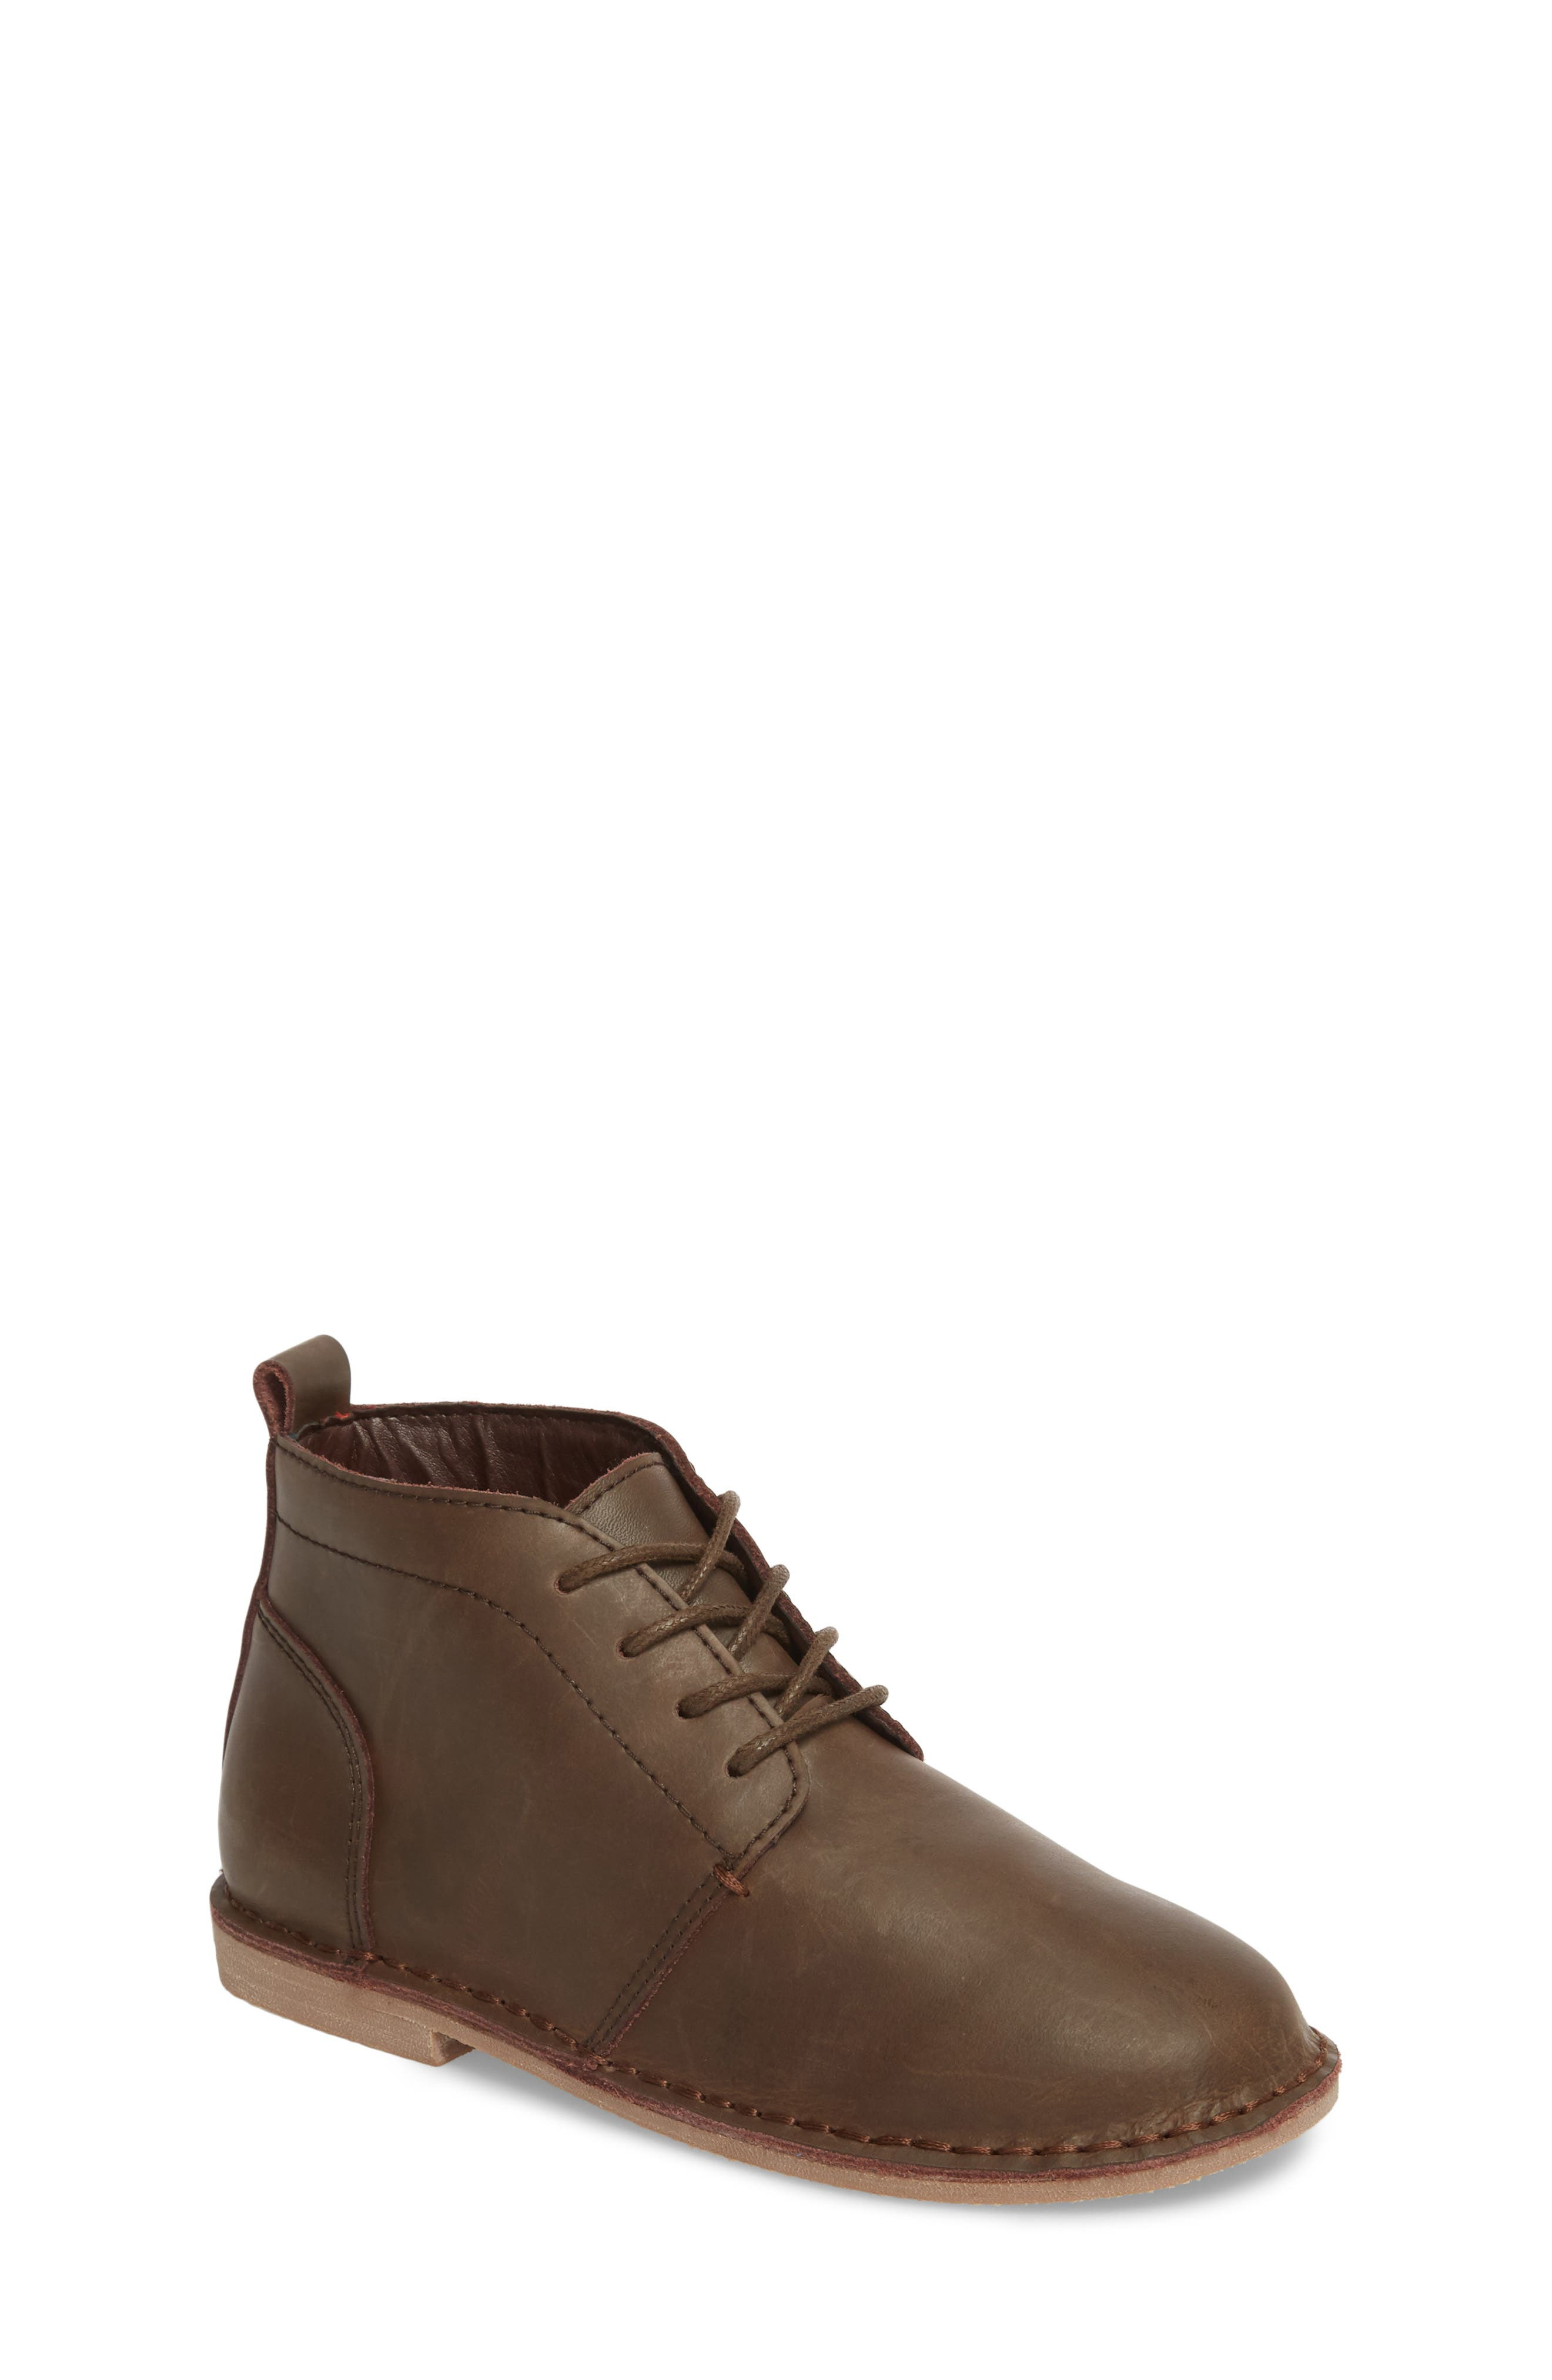 Finley Boot,                         Main,                         color, Chocolate Leather